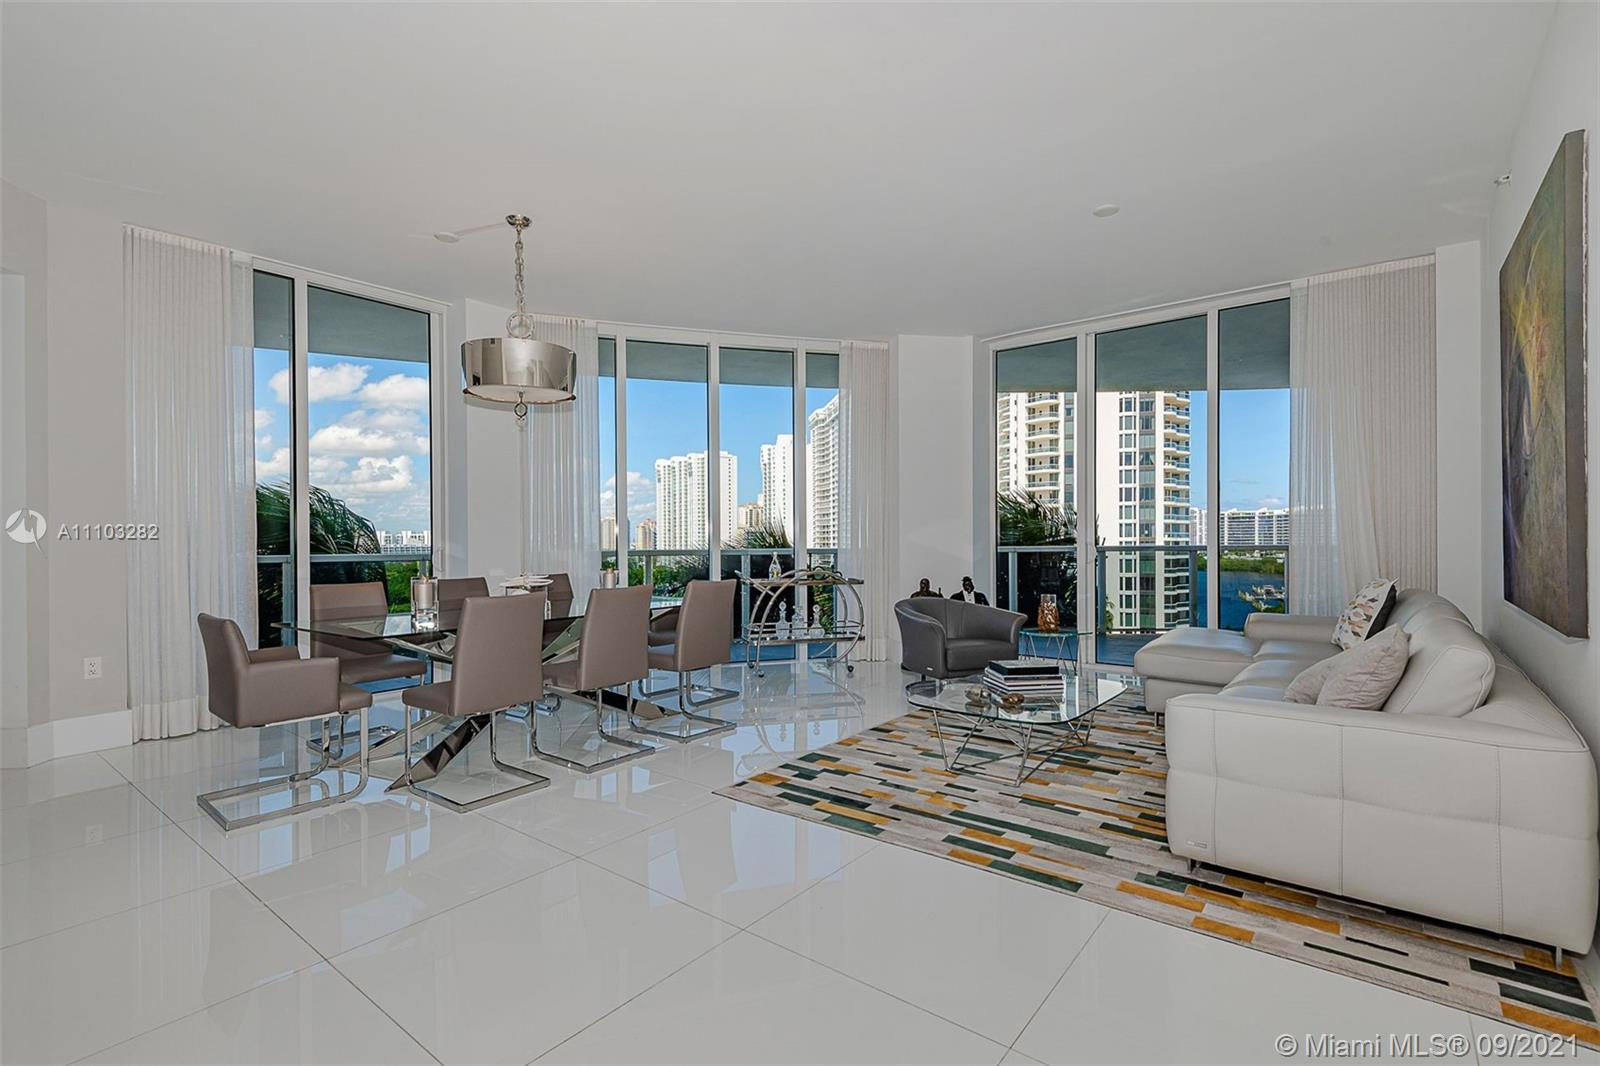 SPECTACULAR RESIDENCE WITH AMAZING VIEWS OF OCEAN, CITY AND INTRACOASTAL. SPACIOUS 3 BED & 3.5 BATHS. PRIVATE ELEVATOR. ELEGANT LIFESTYLE IN PRESTIGIOUS WILLIAMS ISLAND WITH FULL AMENITIES, 3 RESTAURANTS, STATE OF THE ART SPA, MARINA, WALK/JOG PATH, KIDS PLAYGROUND, COURTESY BUS, TENNIS COURTS, WALK TO HOUSES OF WORSHIP AND SO MUCH MORE.